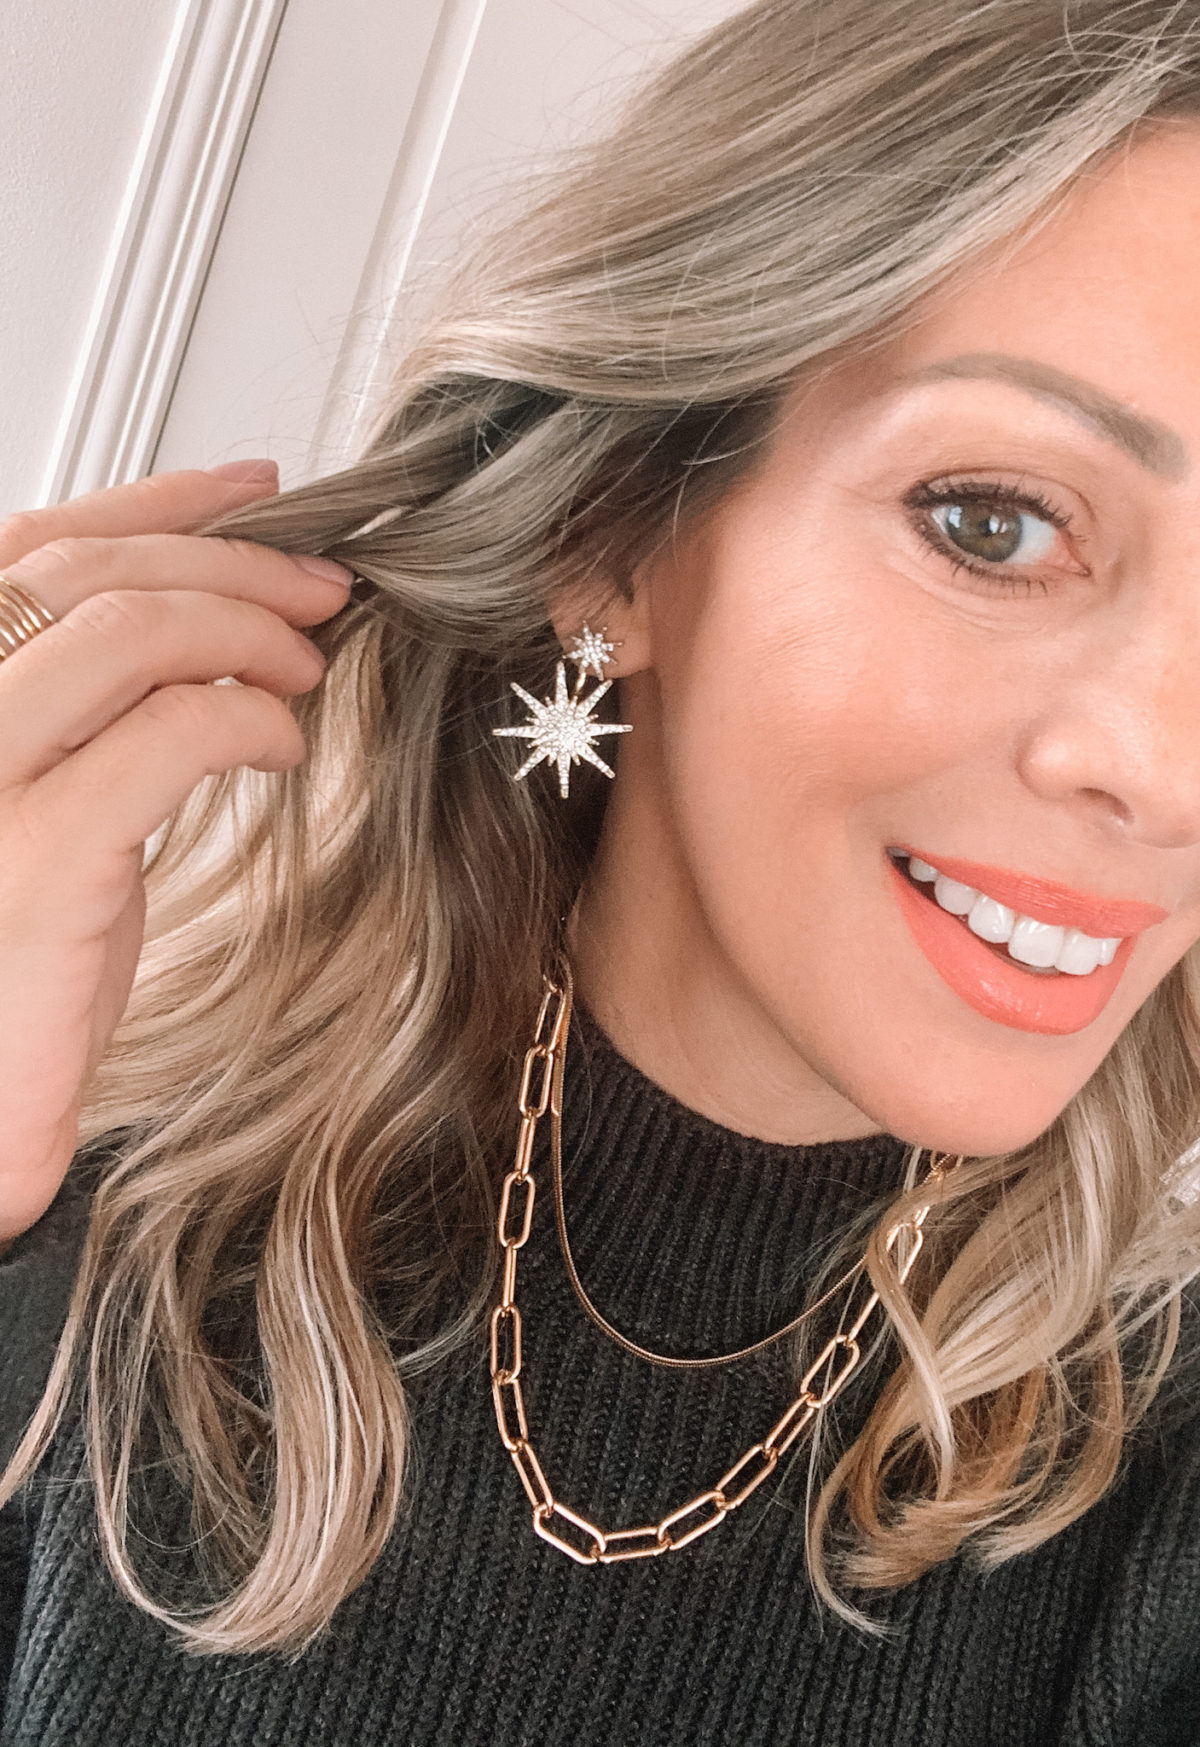 Amazon Fashion Faves, Starburst Earrings, Chain Necklace